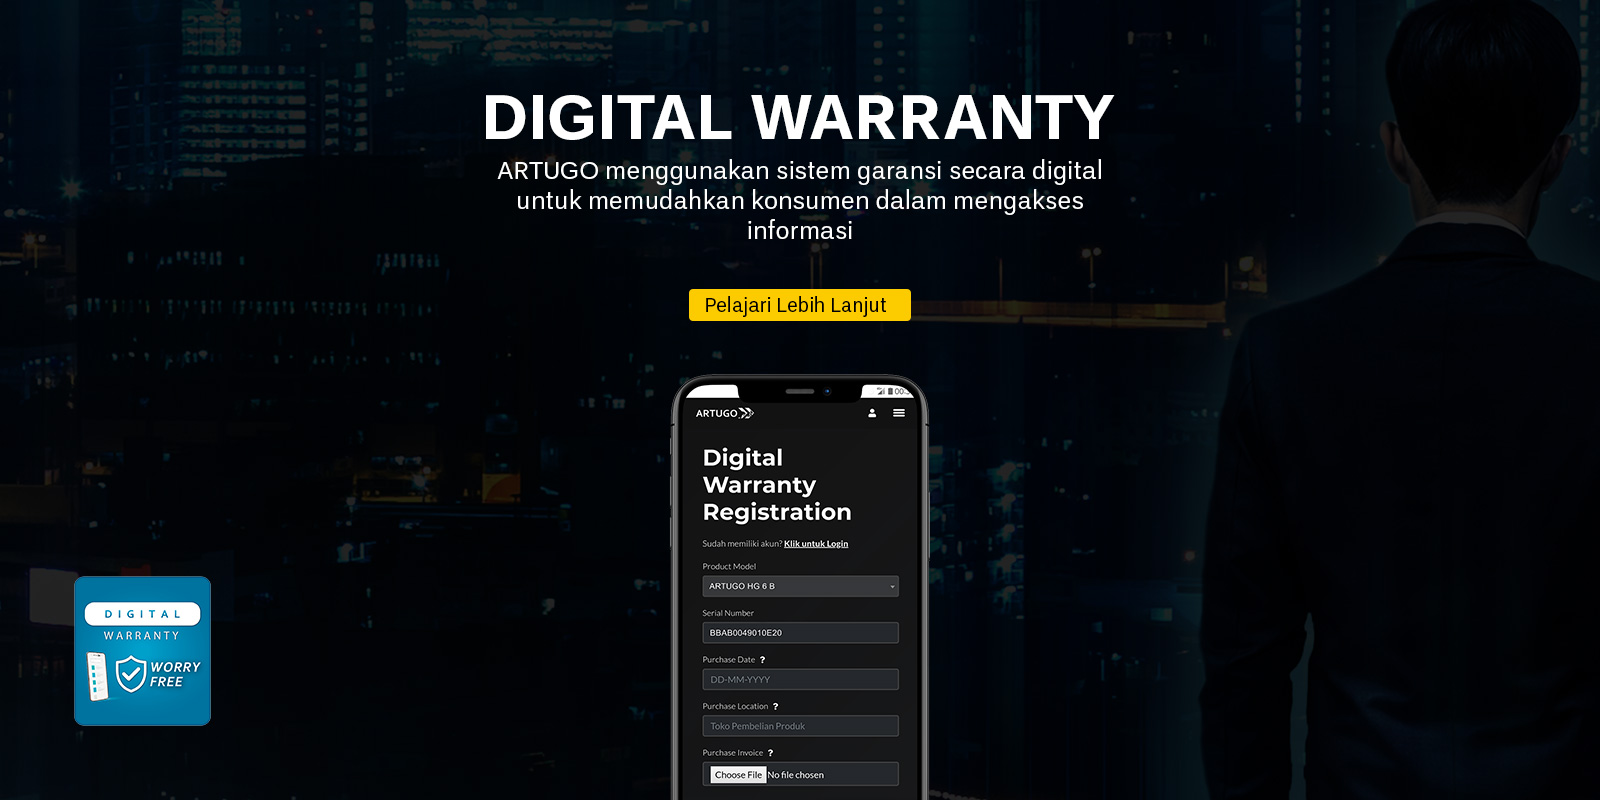 DIGITAL WARRANTY